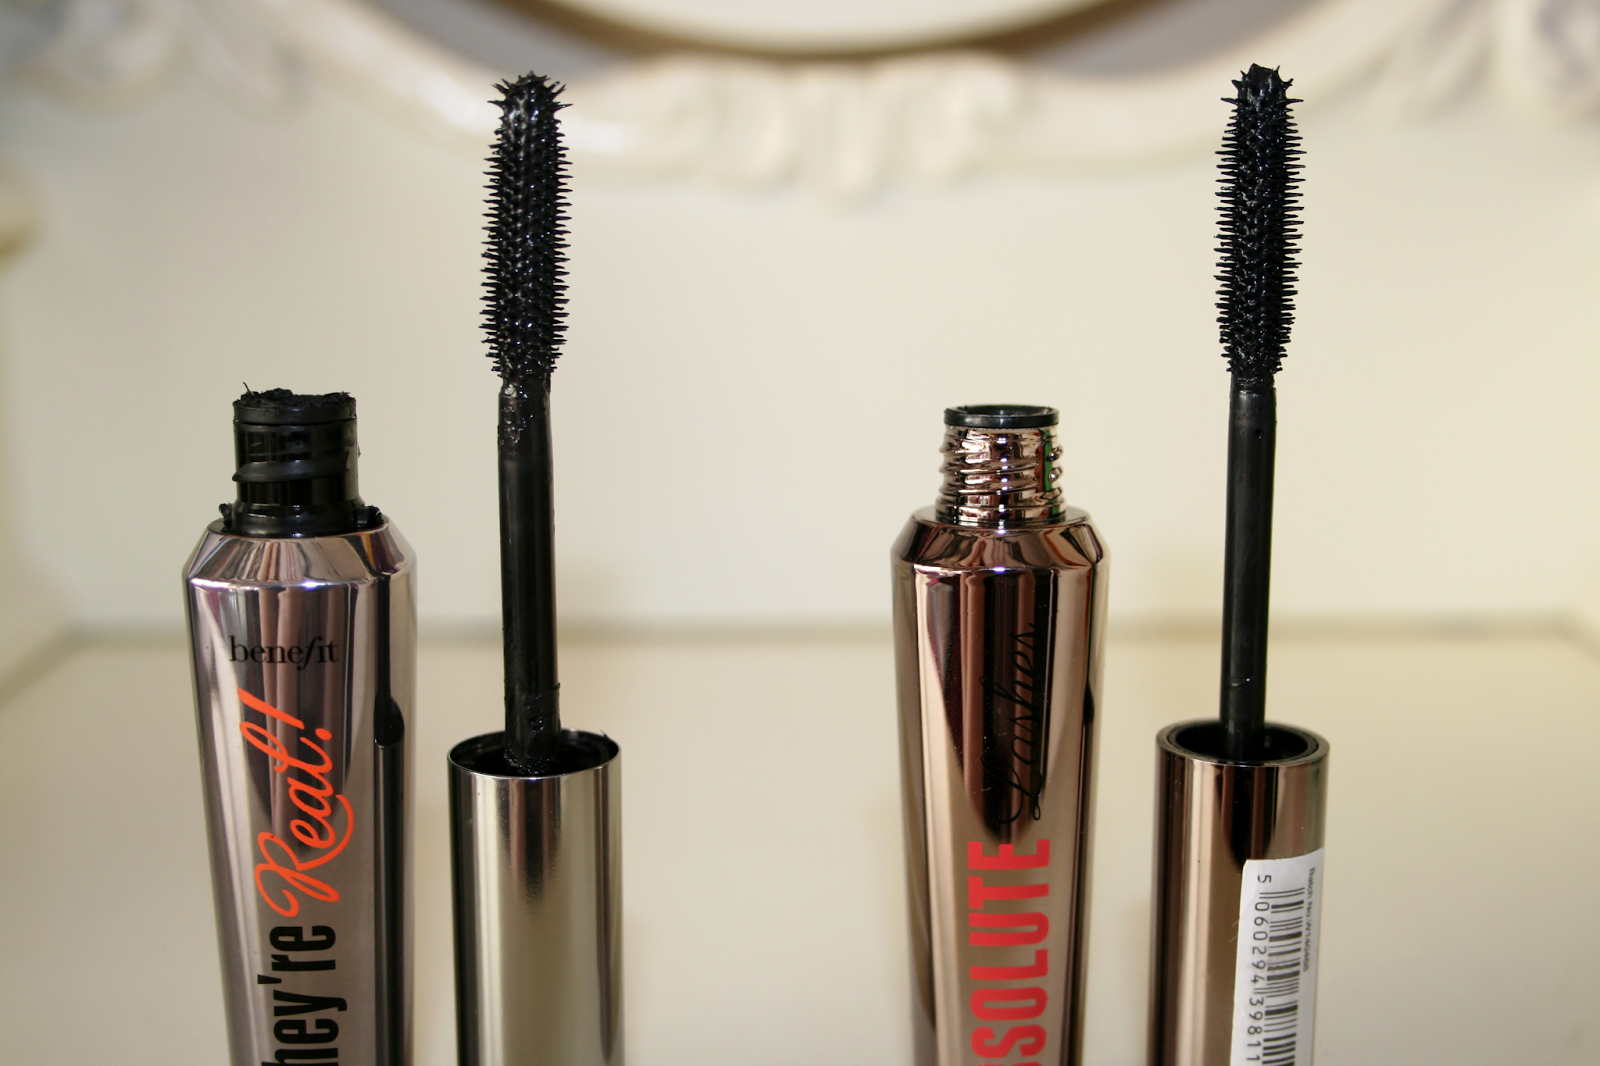 241d0c0883a Benefit They're Real vs W7 Absolute Lashes ♥ — Darling Jordan